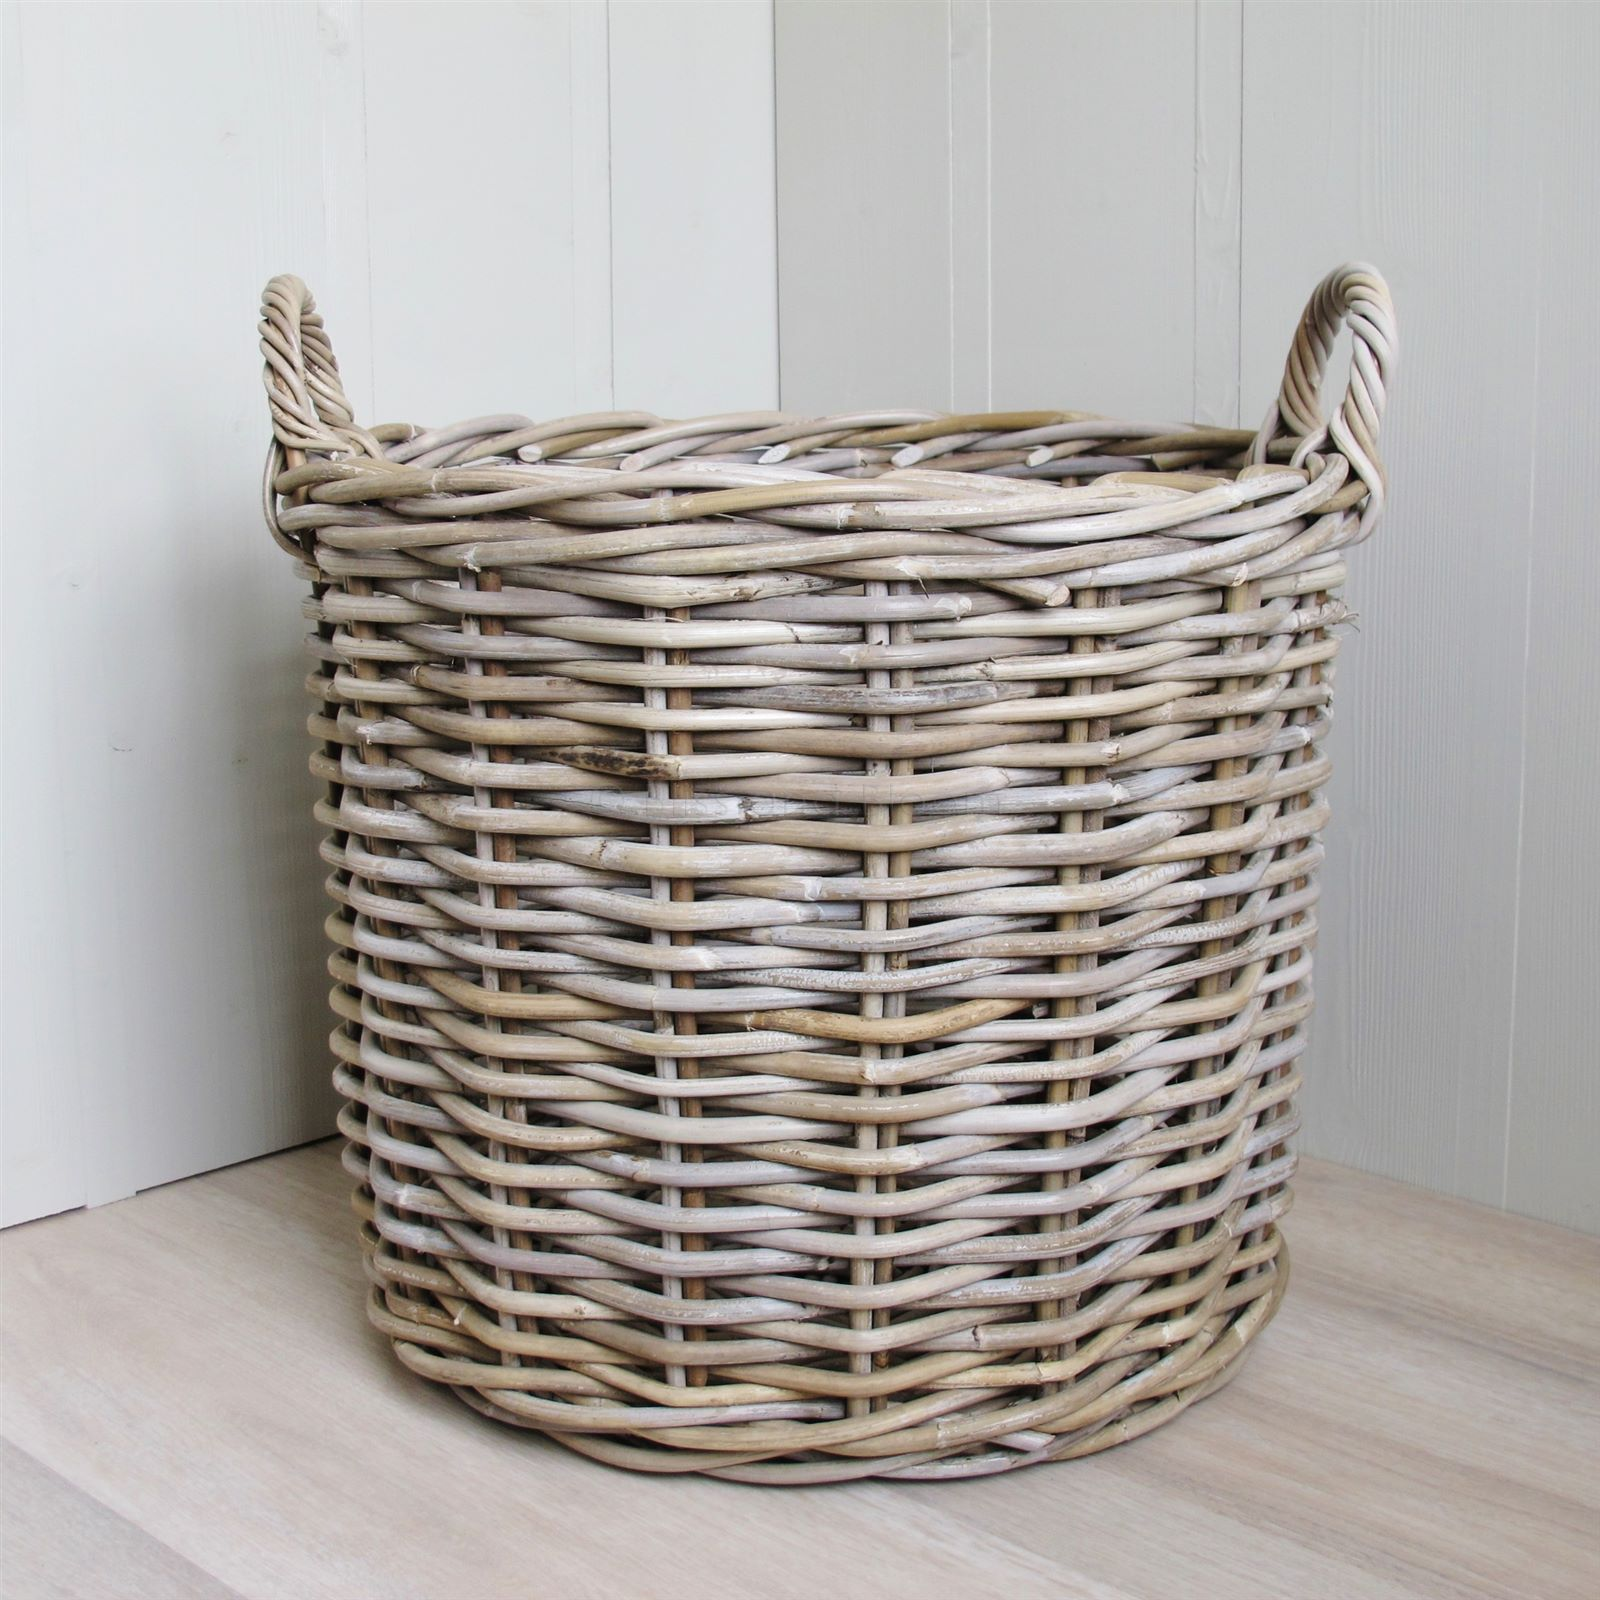 2 Round Rattan Baskets Log Laundry | Bliss and Bloom